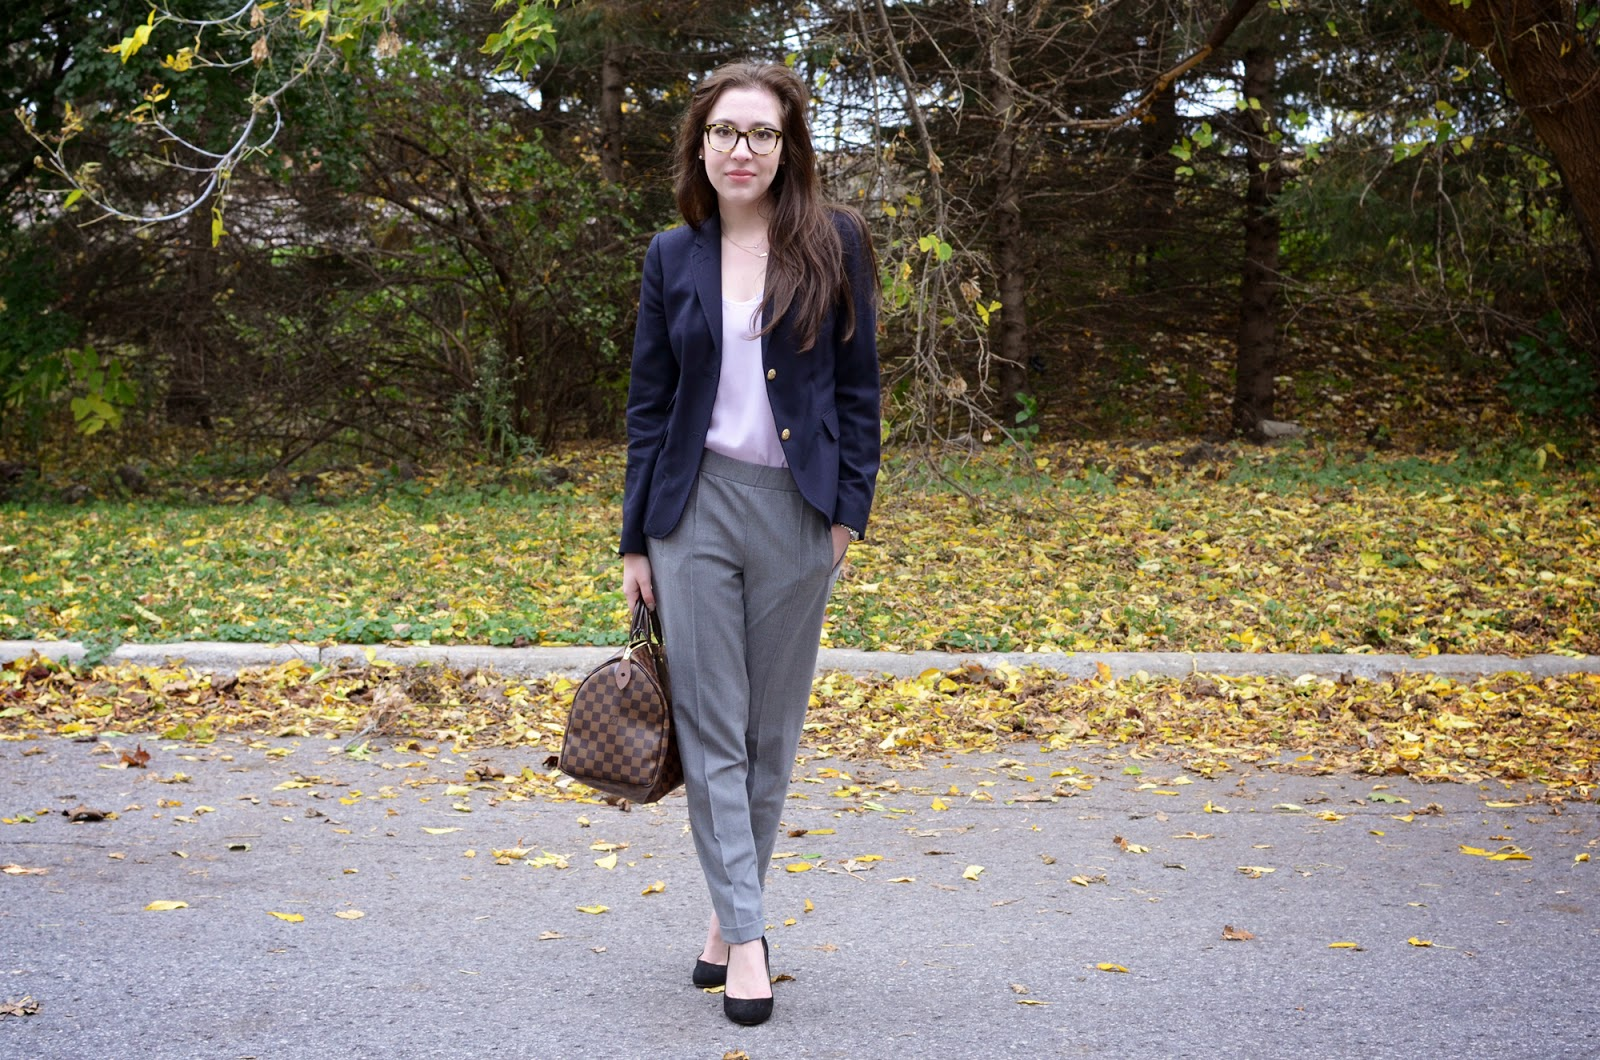 A neutral OOTD for work, ft. Zara, J.Crew, Aritzia, and Louis Vuitton